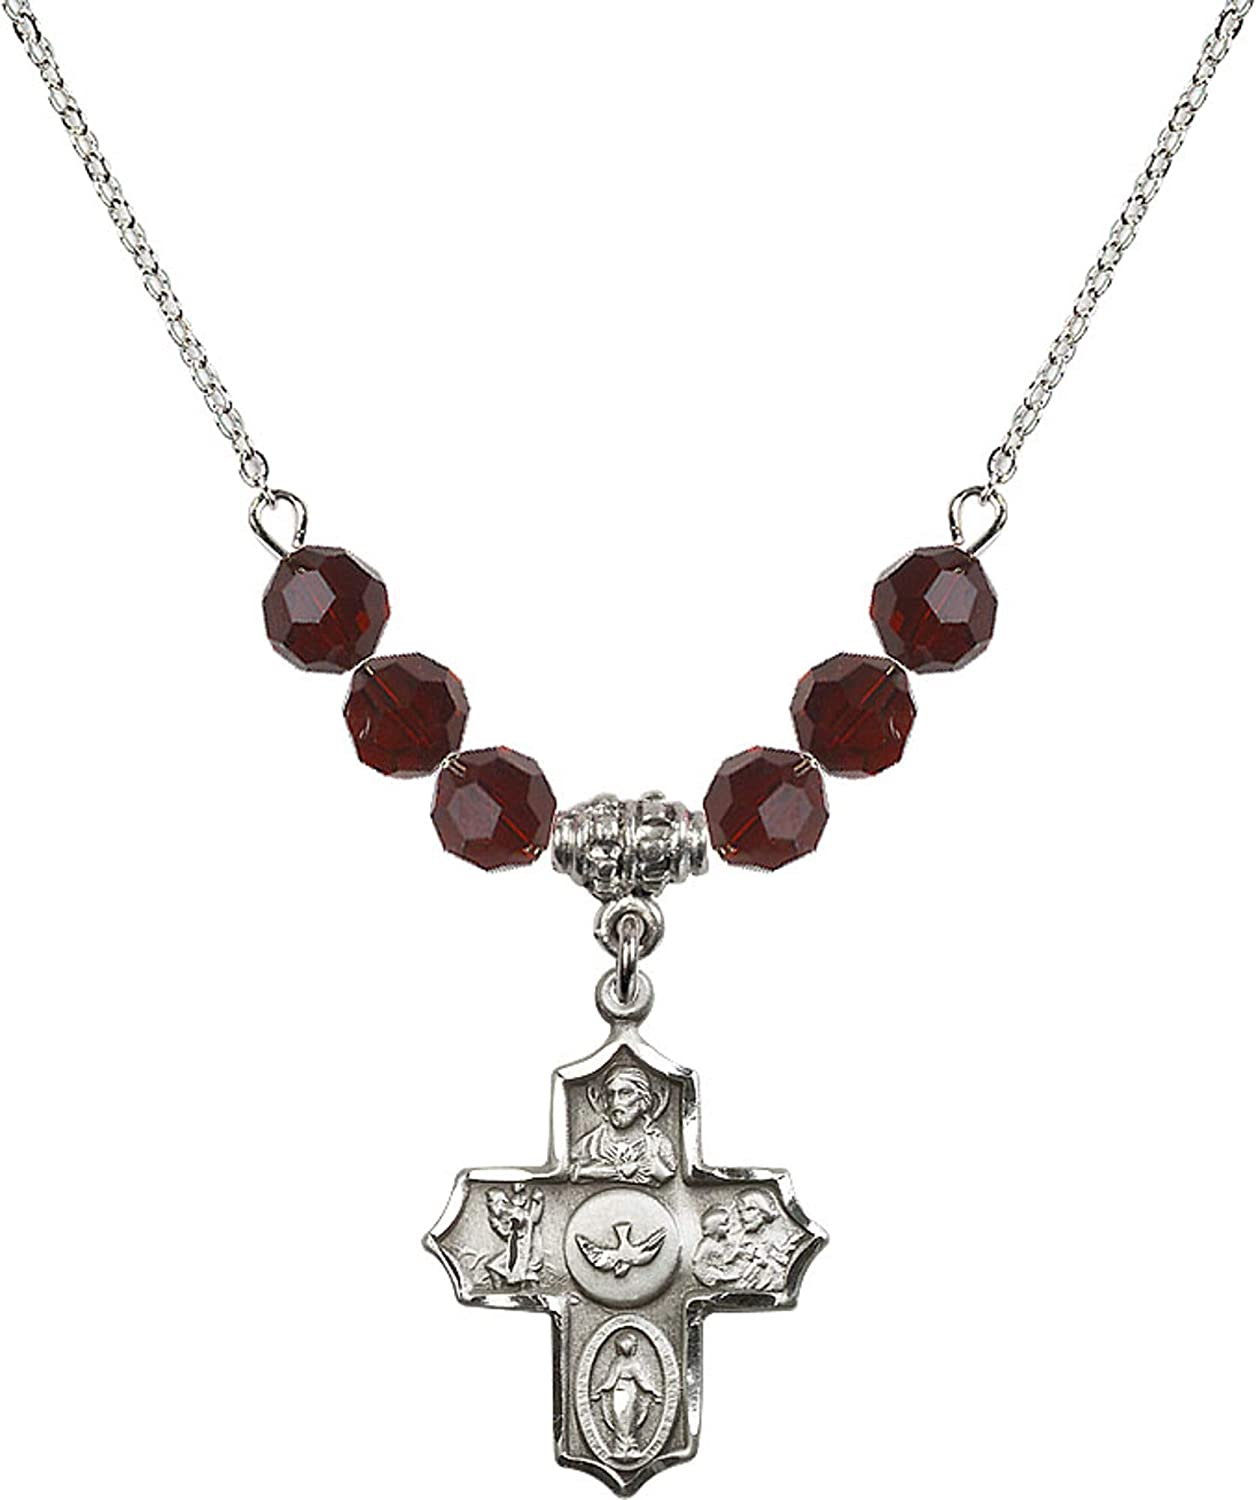 Bonyak Jewelry 18 Inch Rhodium Plated Necklace w// 6mm Red January Birth Month Stone Beads and 5-Way Charm